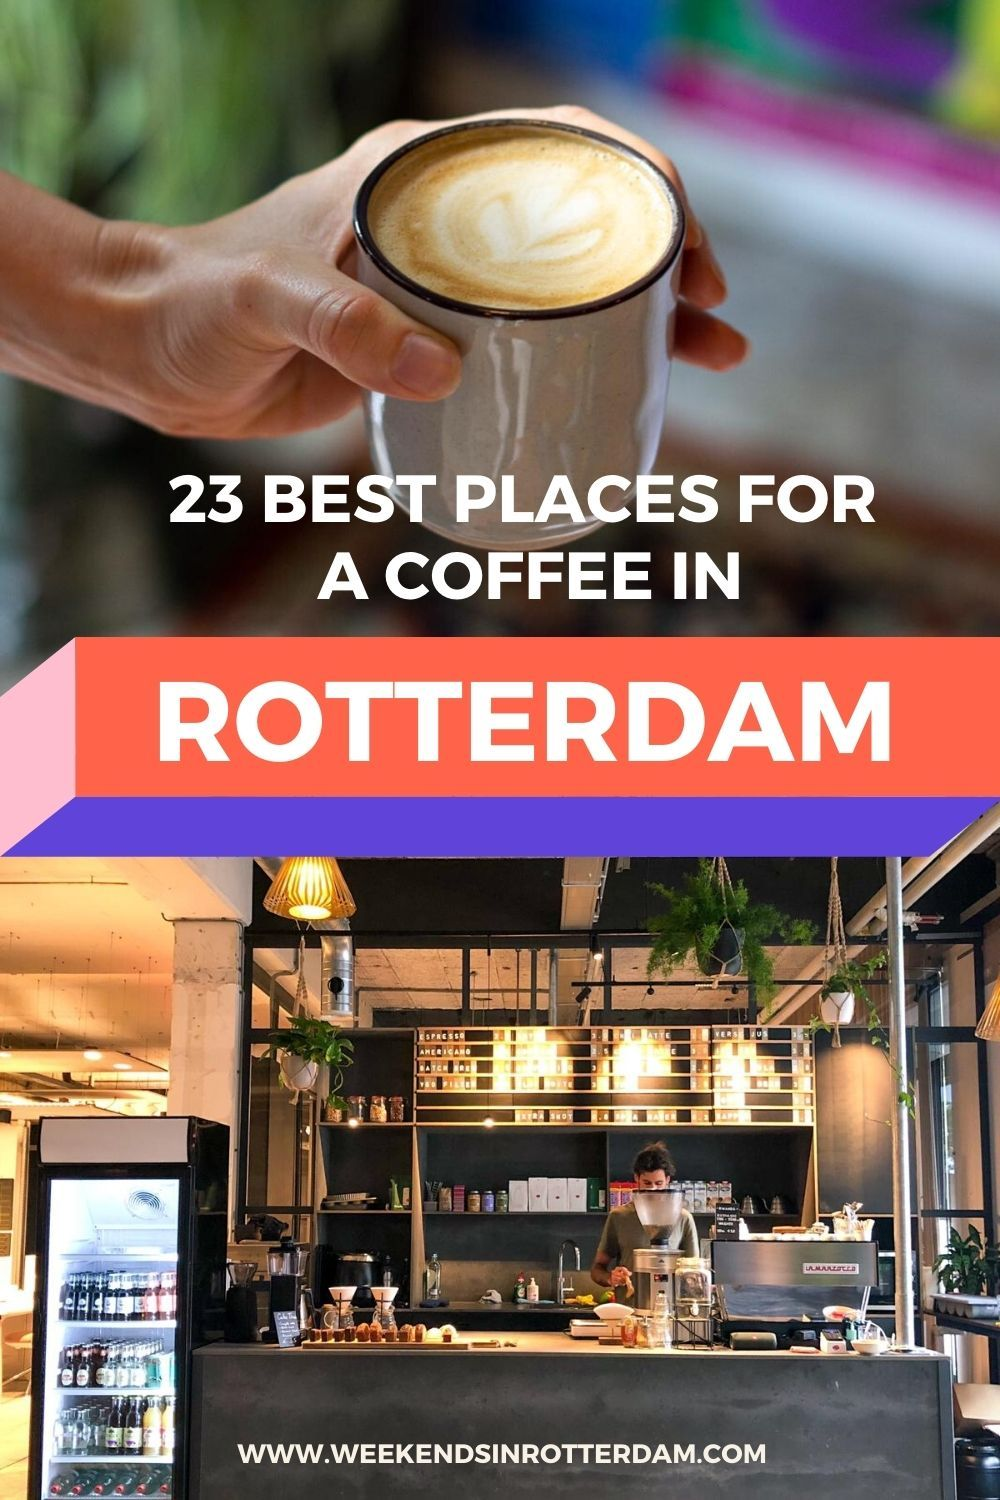 24 Best coffee places in Rotterdam Weekends in Rotterdam